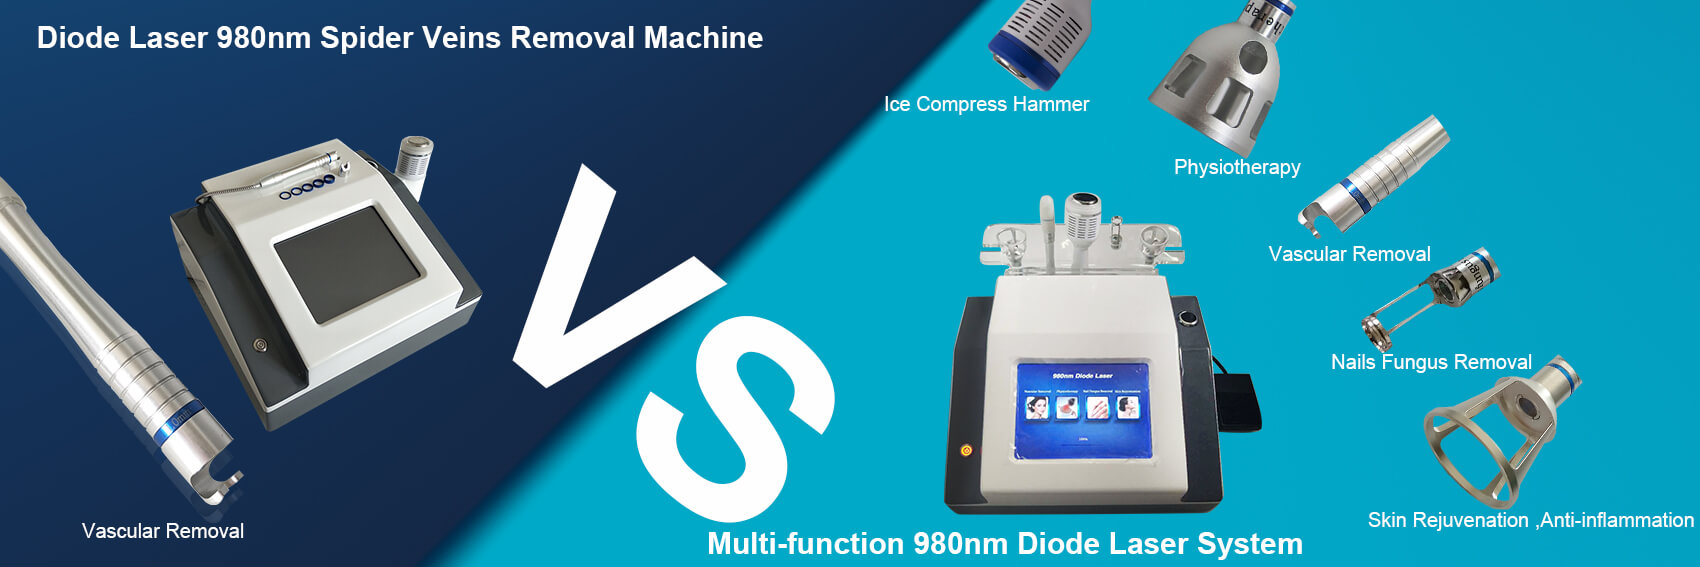 980nm spider vein removal machine VS 4 in 1 980nm Diode Laser machine